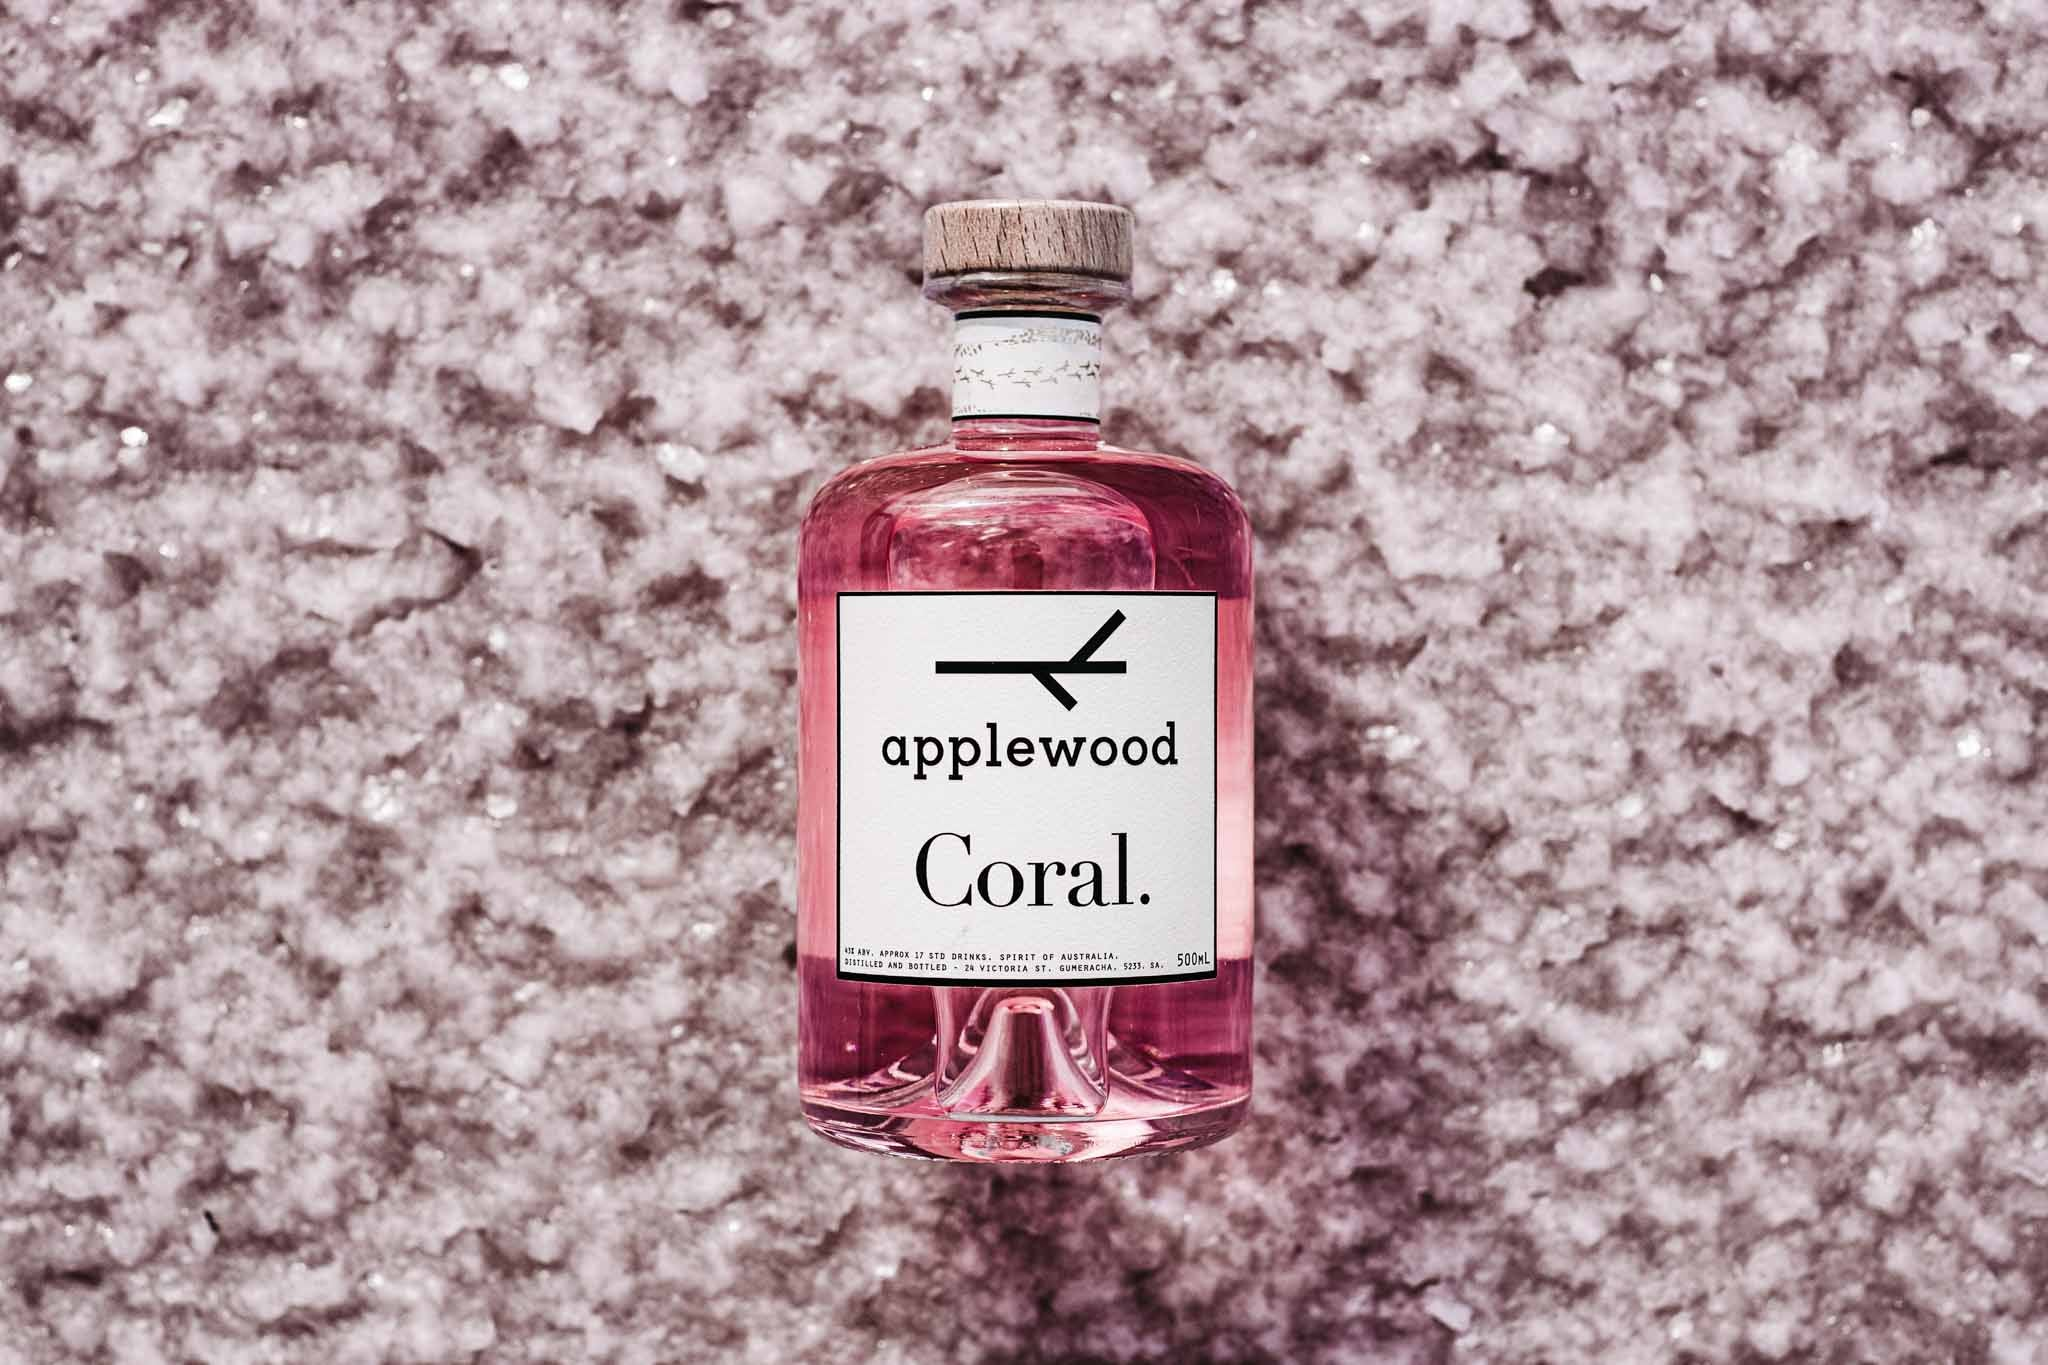 coral pink gin is laying down on a salt lake. the shot is from above showing the beautiful pink colour of the gin.